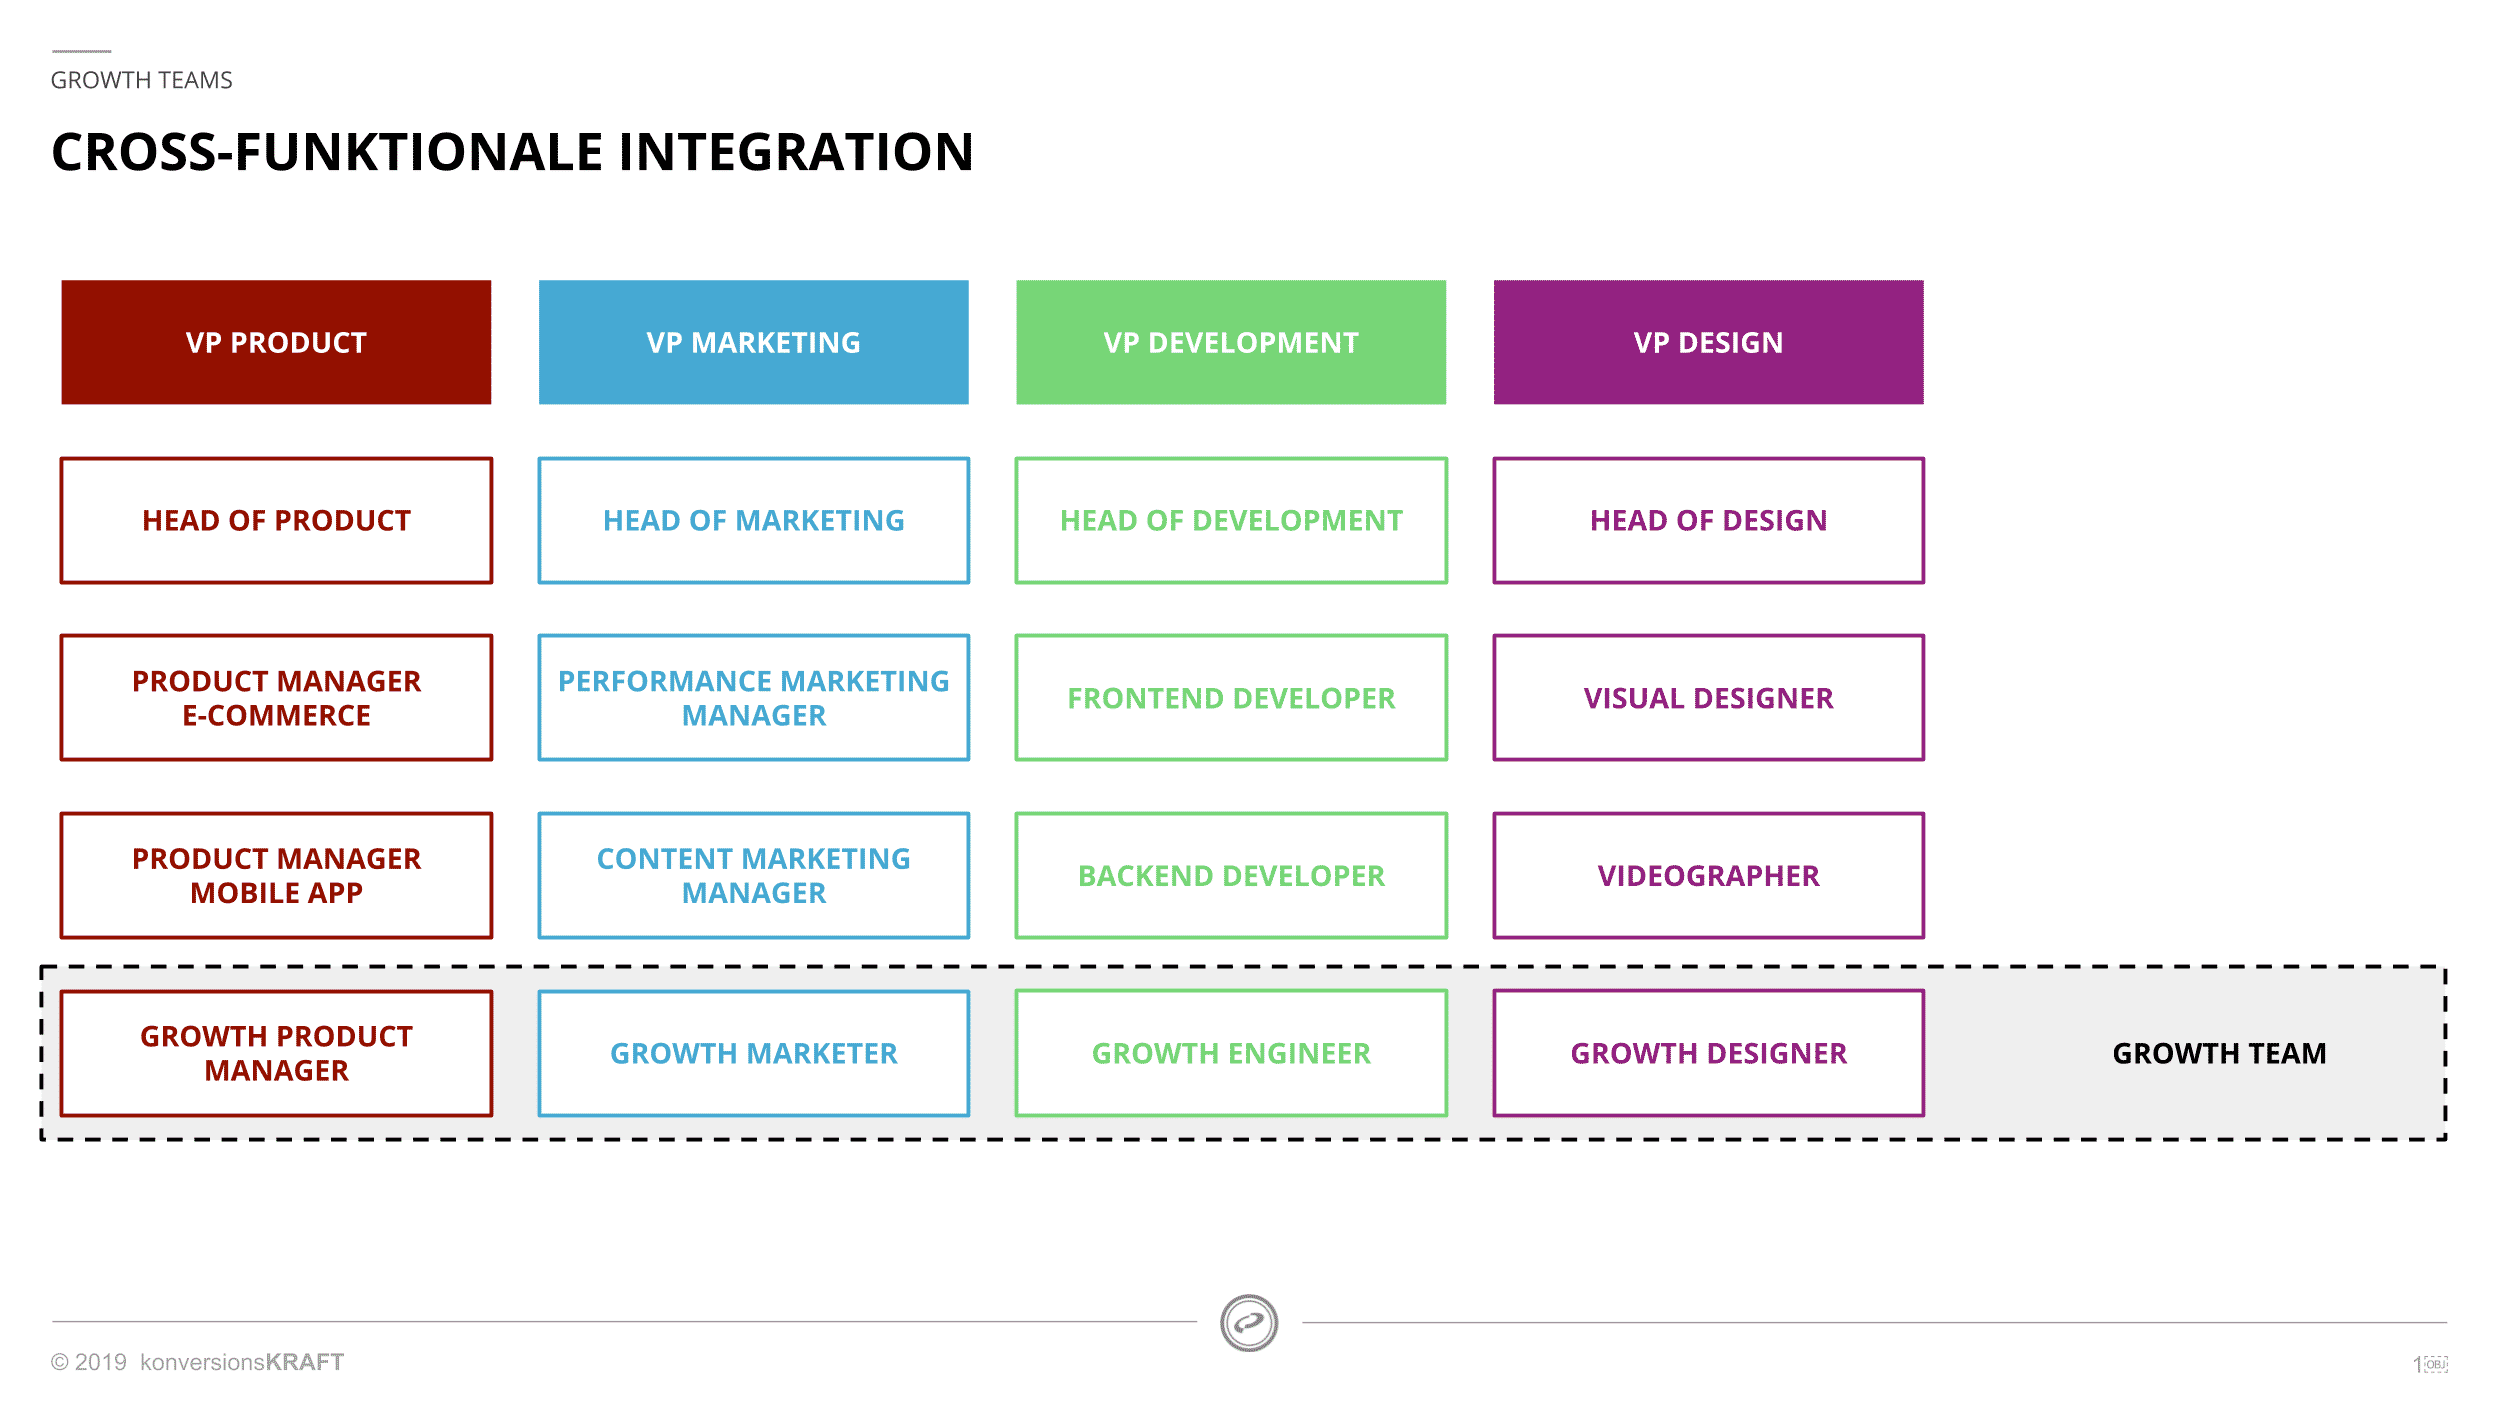 Growth Teams: Cross-funktionale Integration